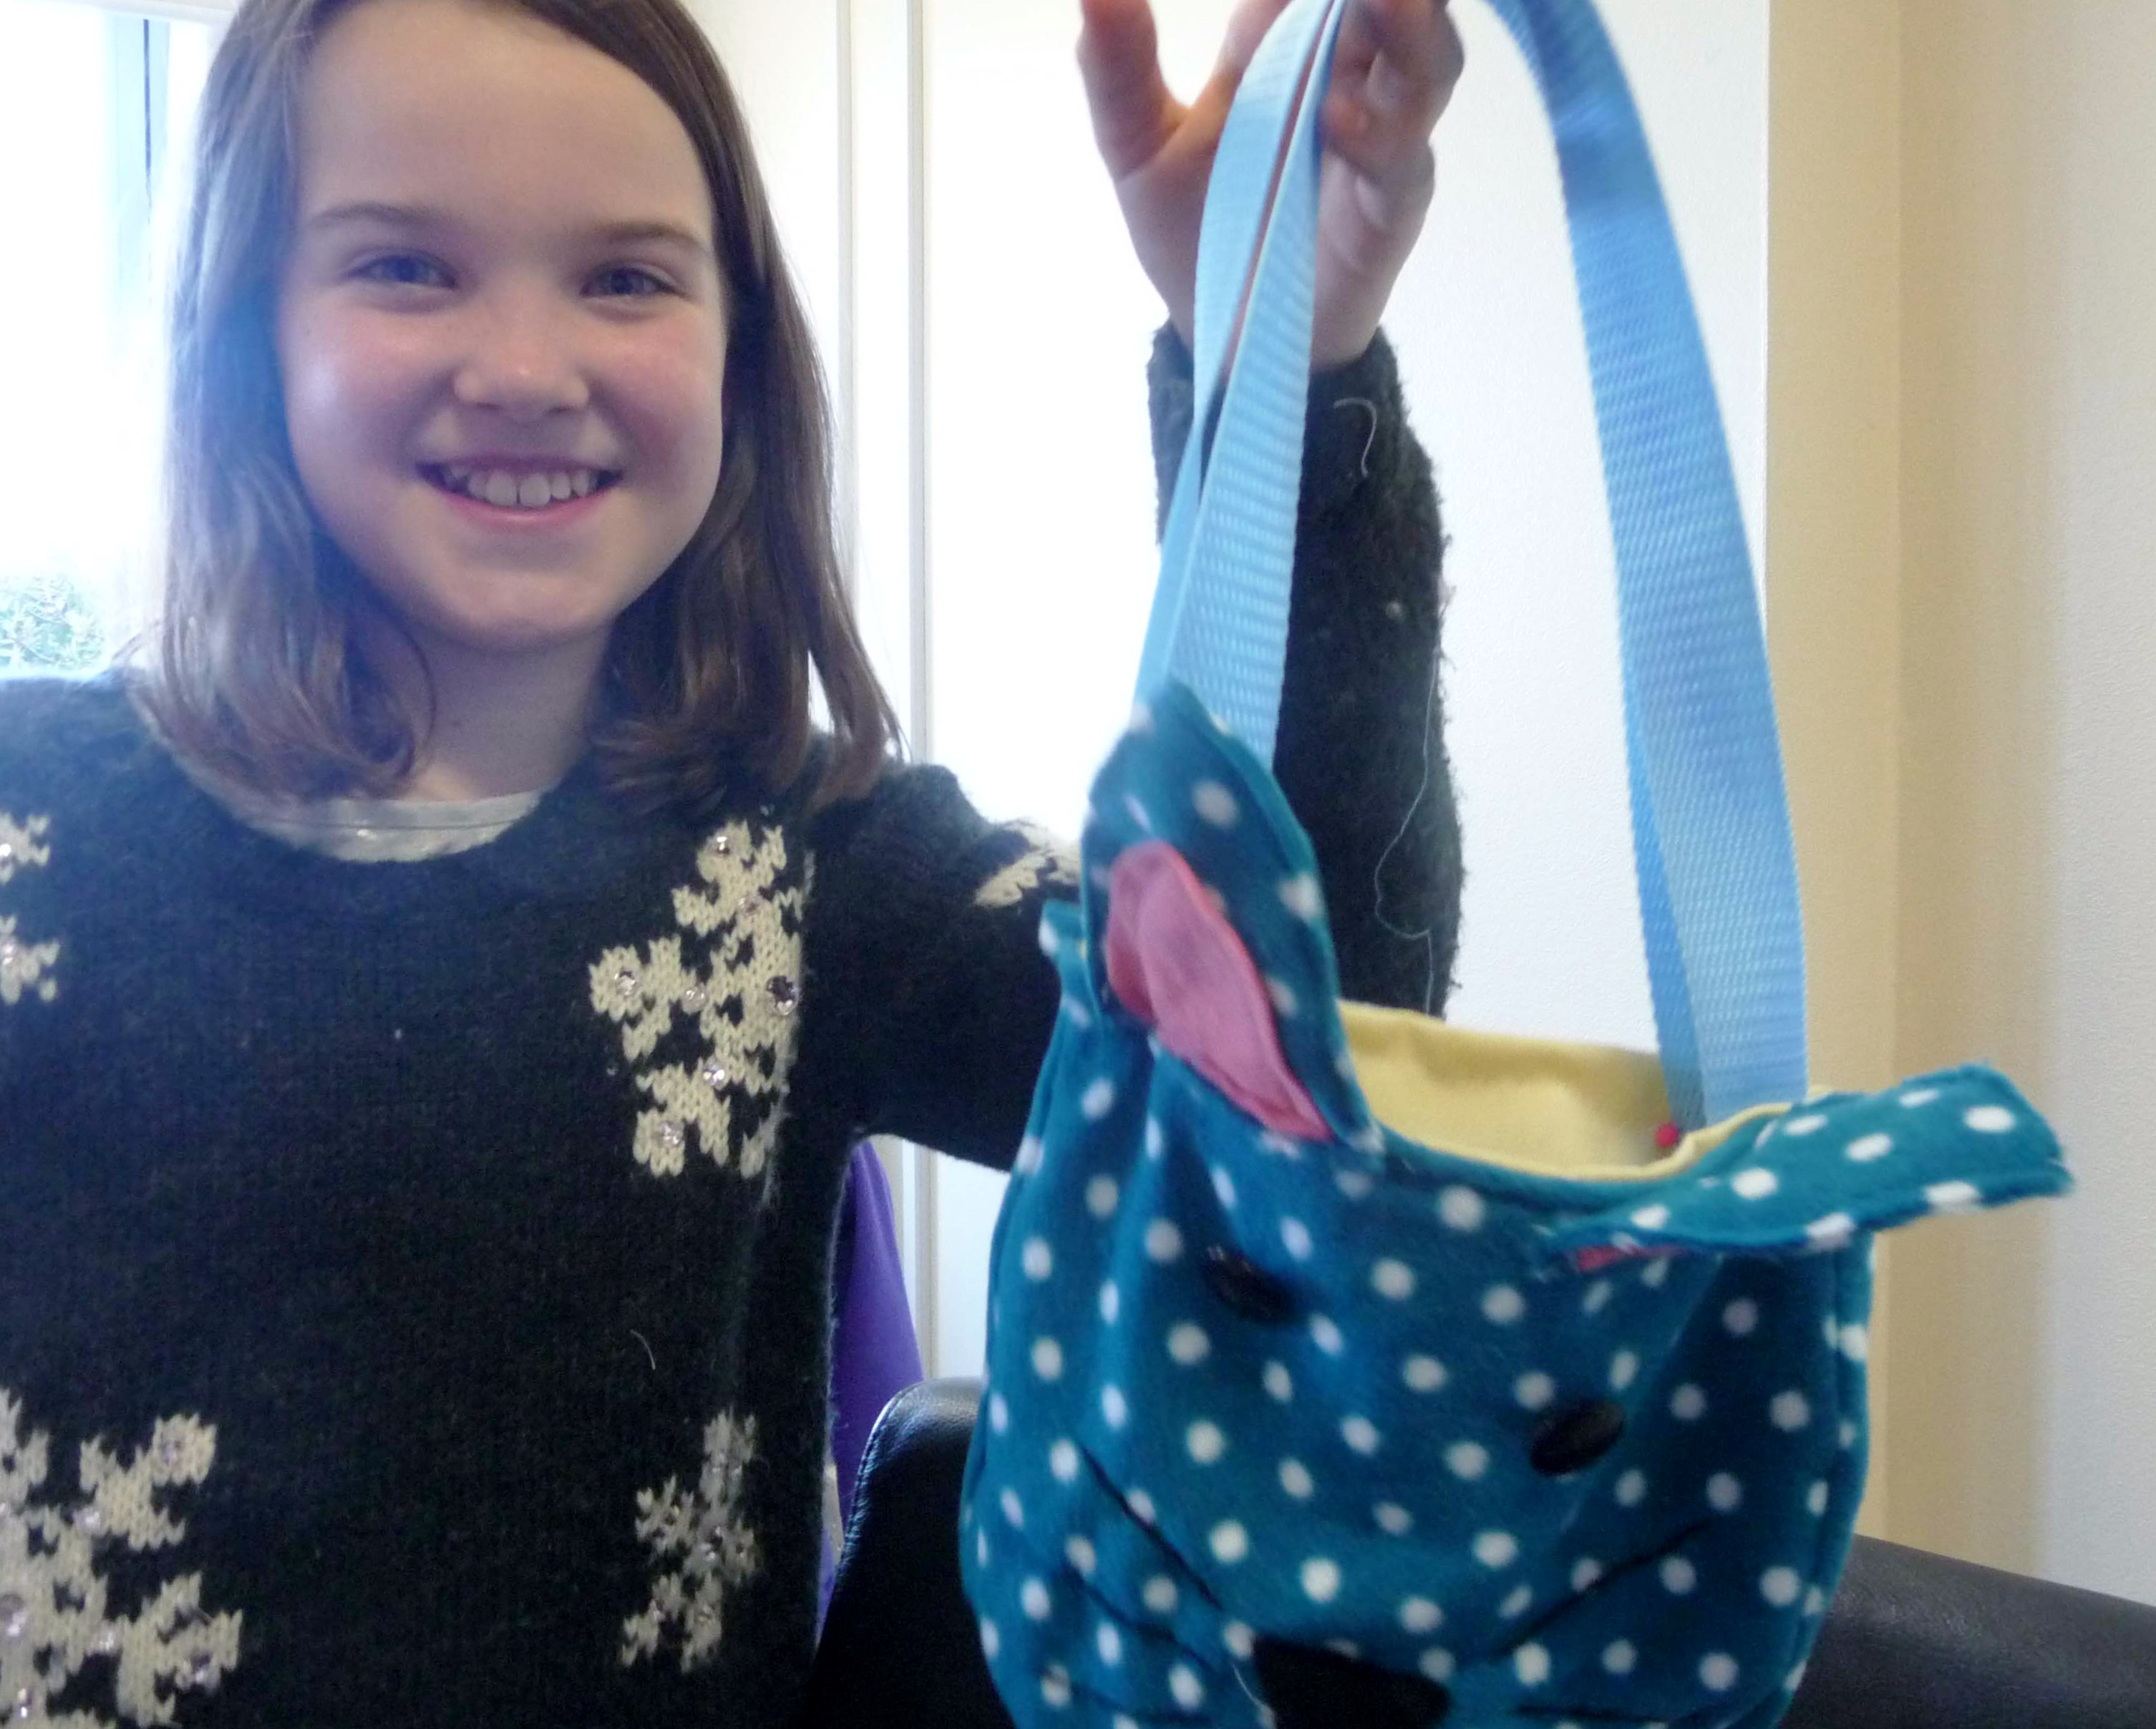 Ruby is very pleased with her completed bag